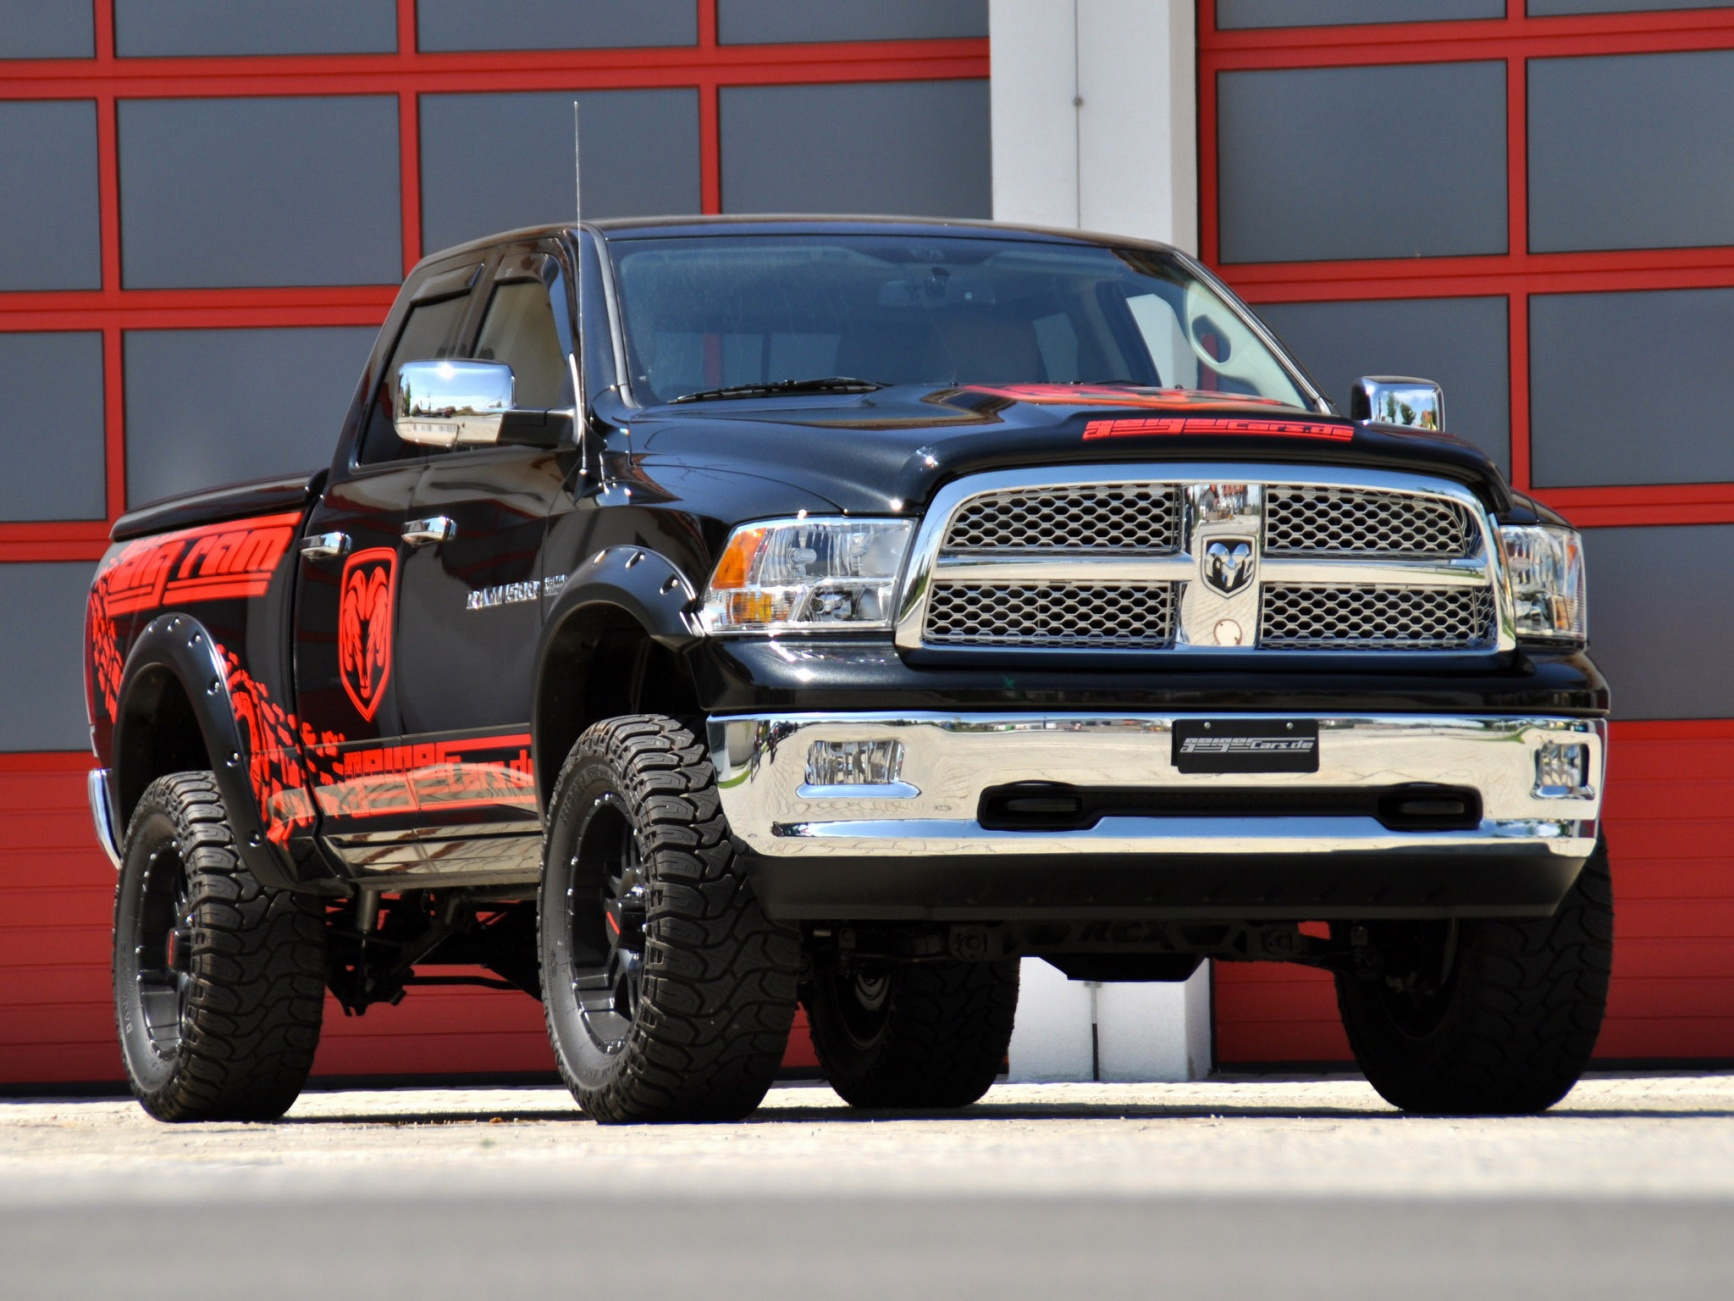 2012 Dodge Ram 1500 truck trucks offroad 4x4 wallpaper 1734x1301 1734x1301